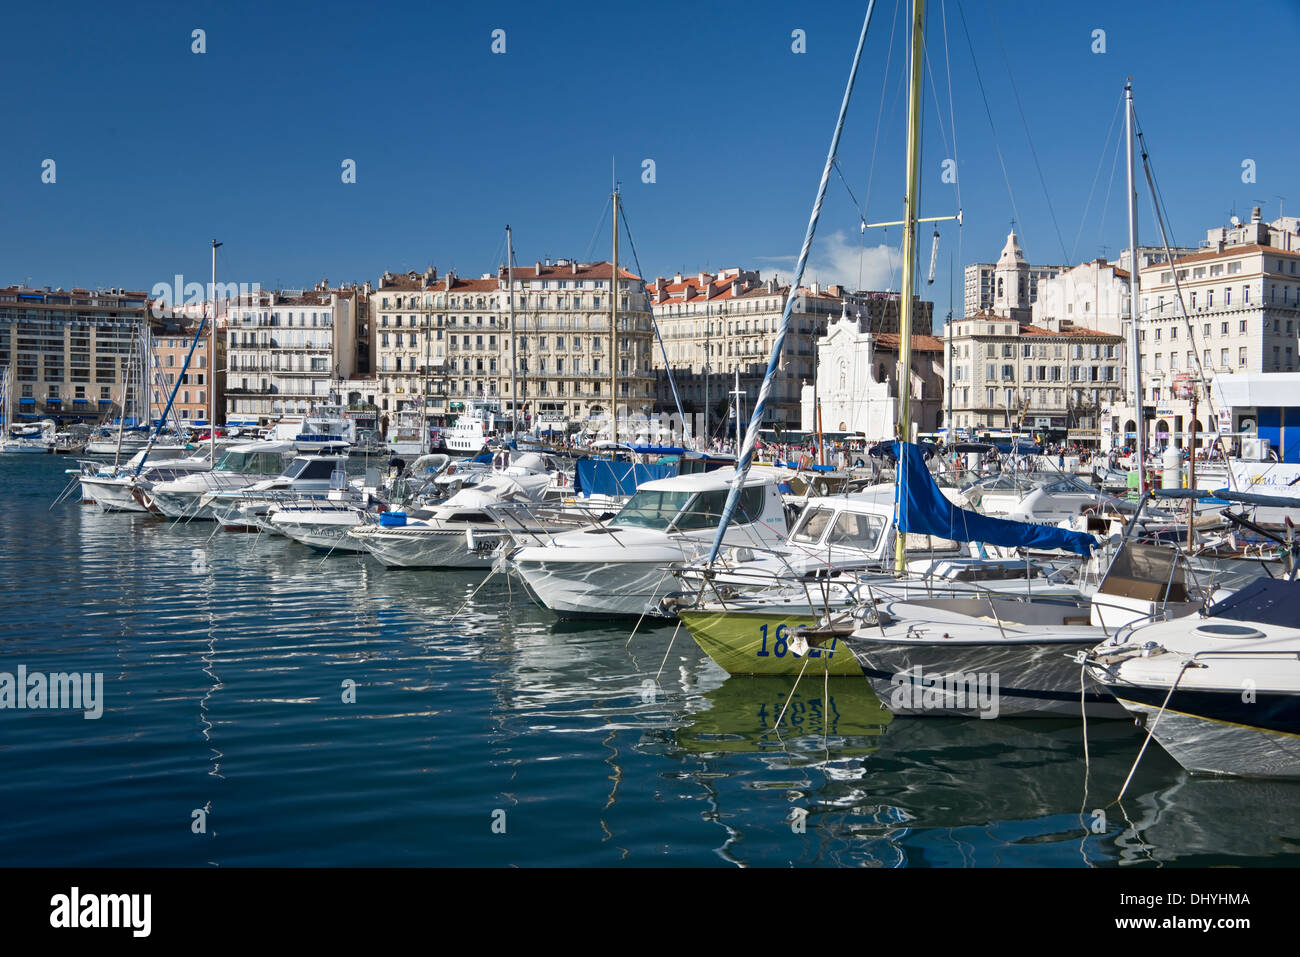 Sailboats in the old port of Marseille, Bouches-du-Rhône, France - Stock Image